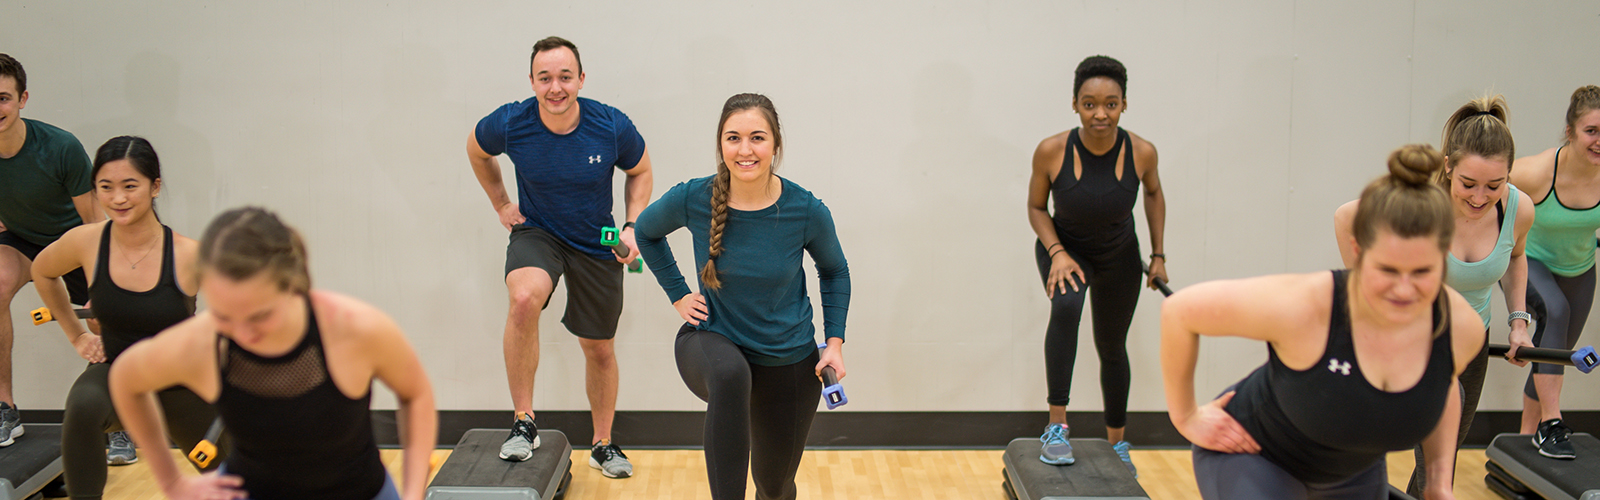 Participants in a high intensity interval training class